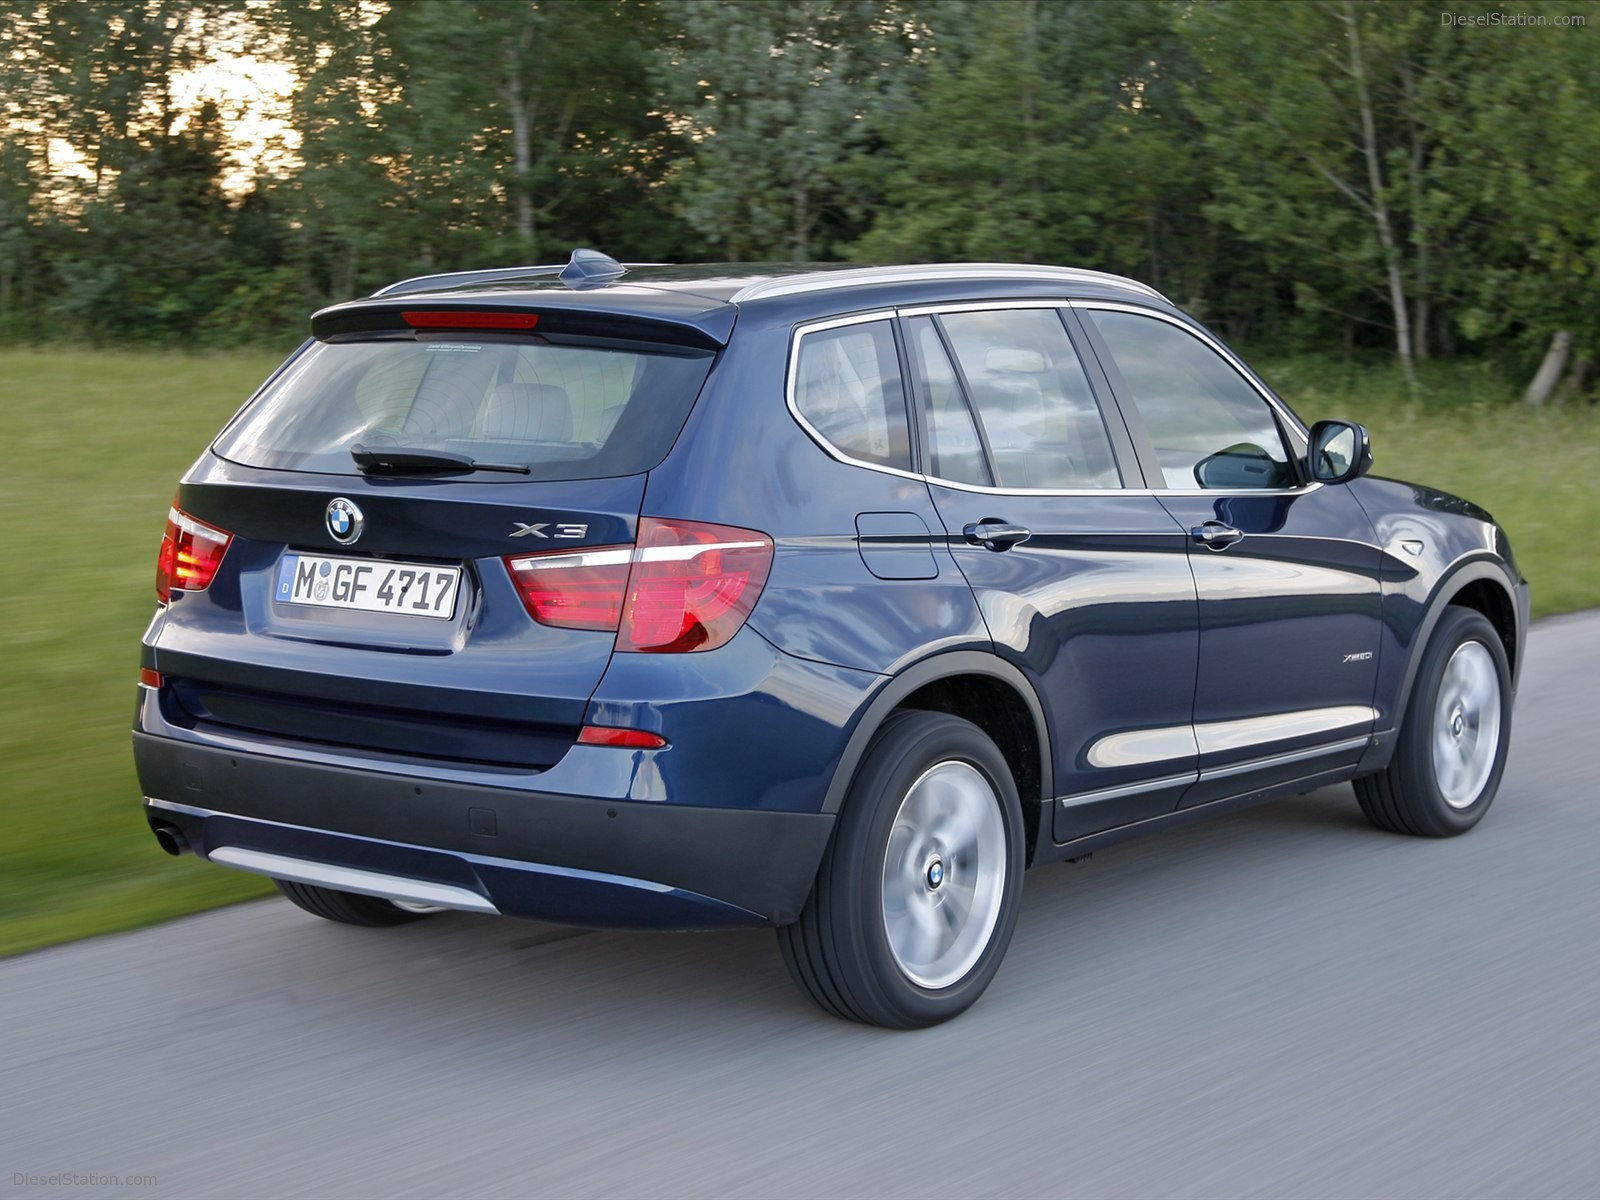 BMW X3 sDrive20i 2012 photo - 2